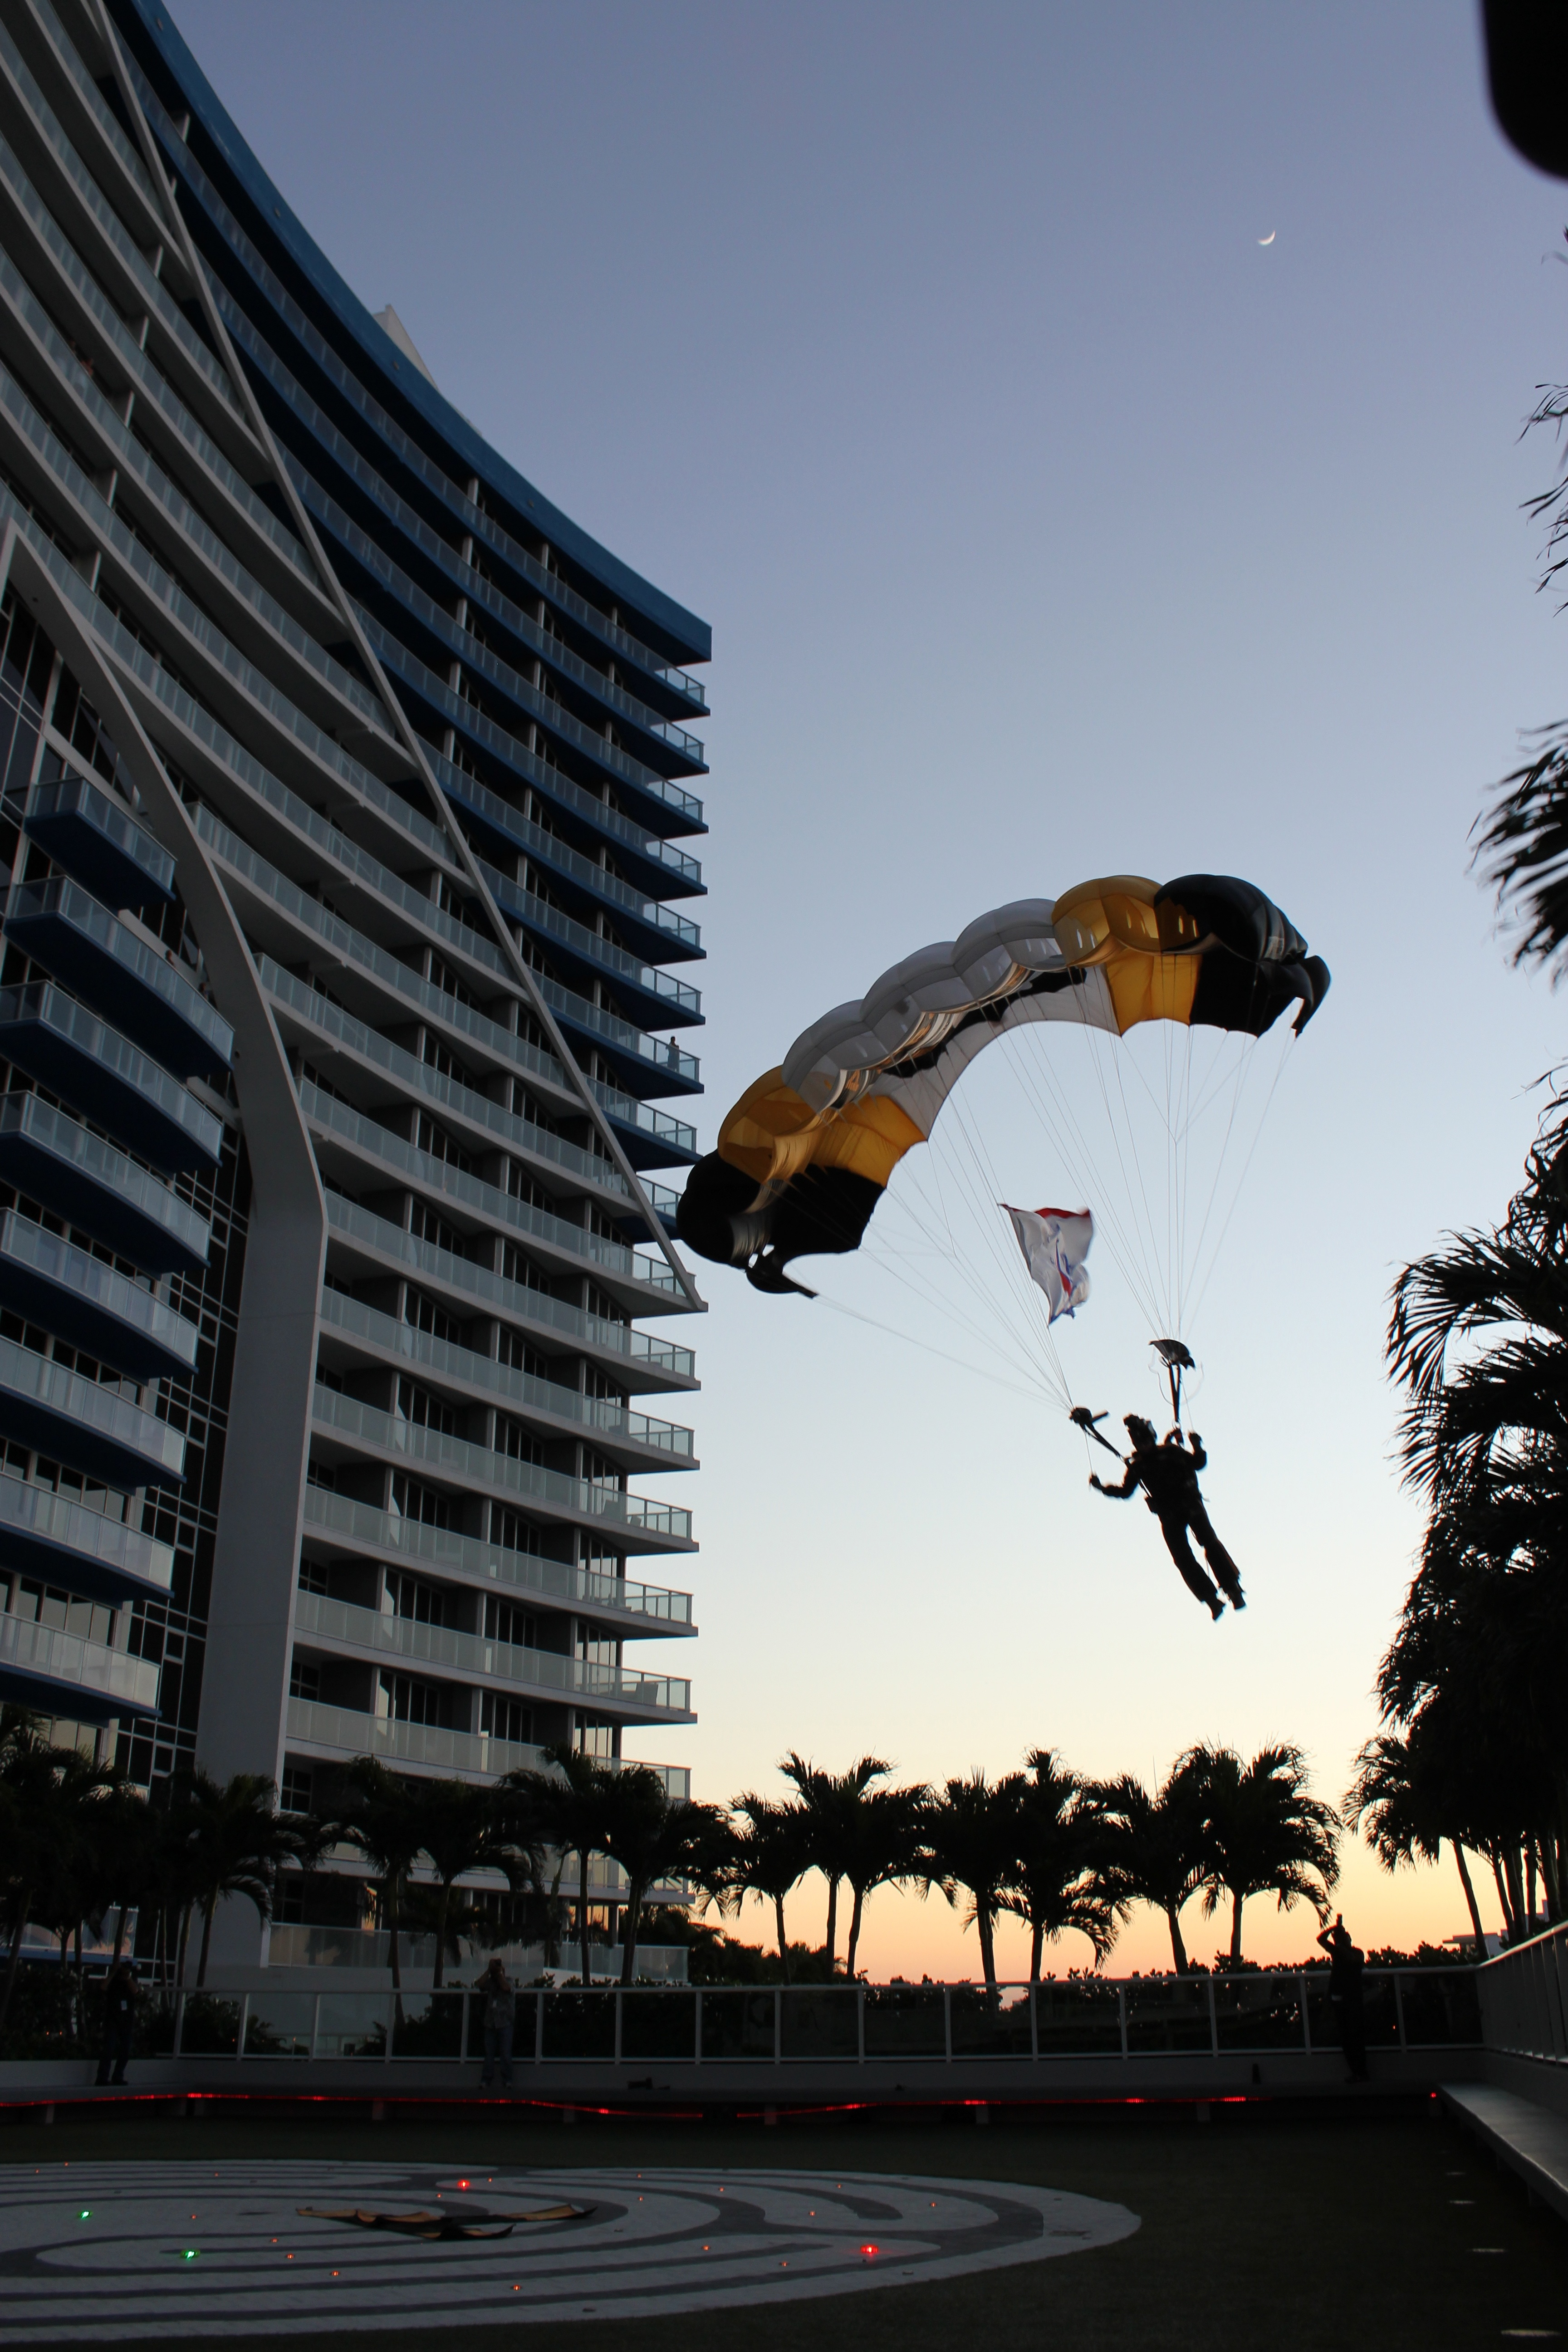 "Lauderdale Air Show Kicks off a weekend of activities with a spectacular sunset landing by a member of the 101st Airborne Division's elite parachute demonstration team at the W Fort Lauderdale. After a 5 year hiatus, ""America's Air Show"" is expected to attract 1 million visitors."